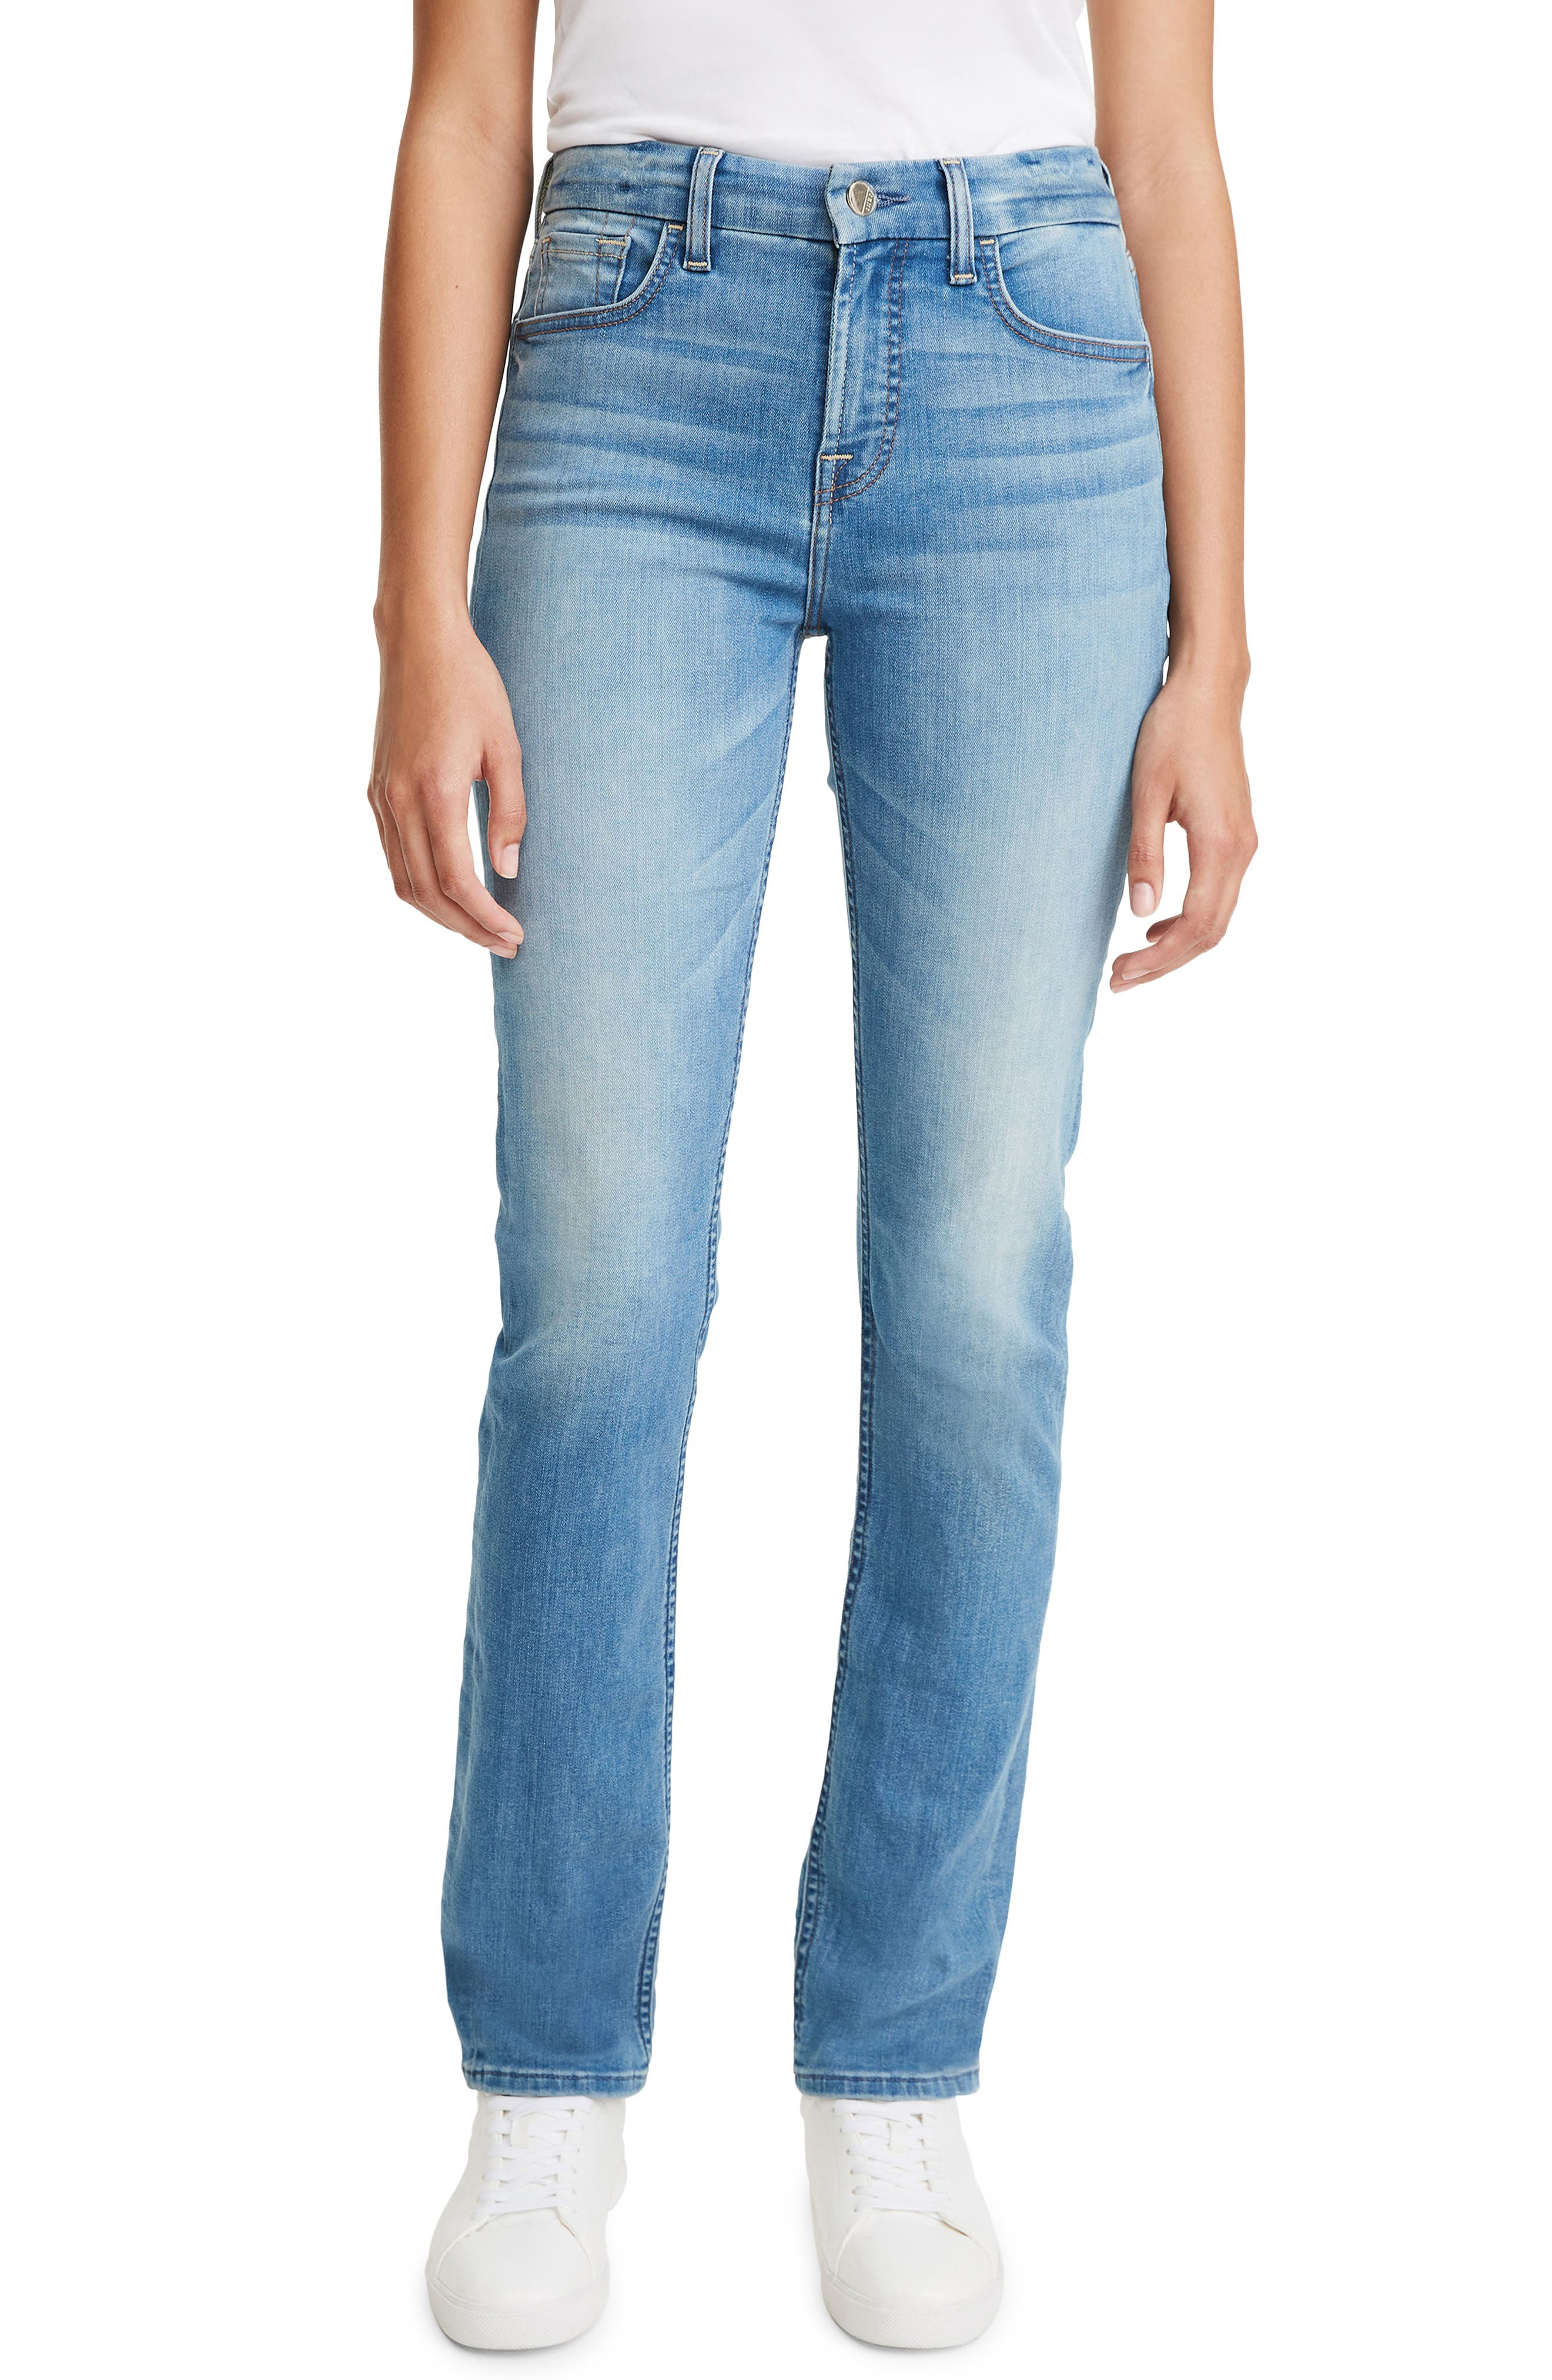 By 7 For All Mankind Slim Straight Leg Jeans